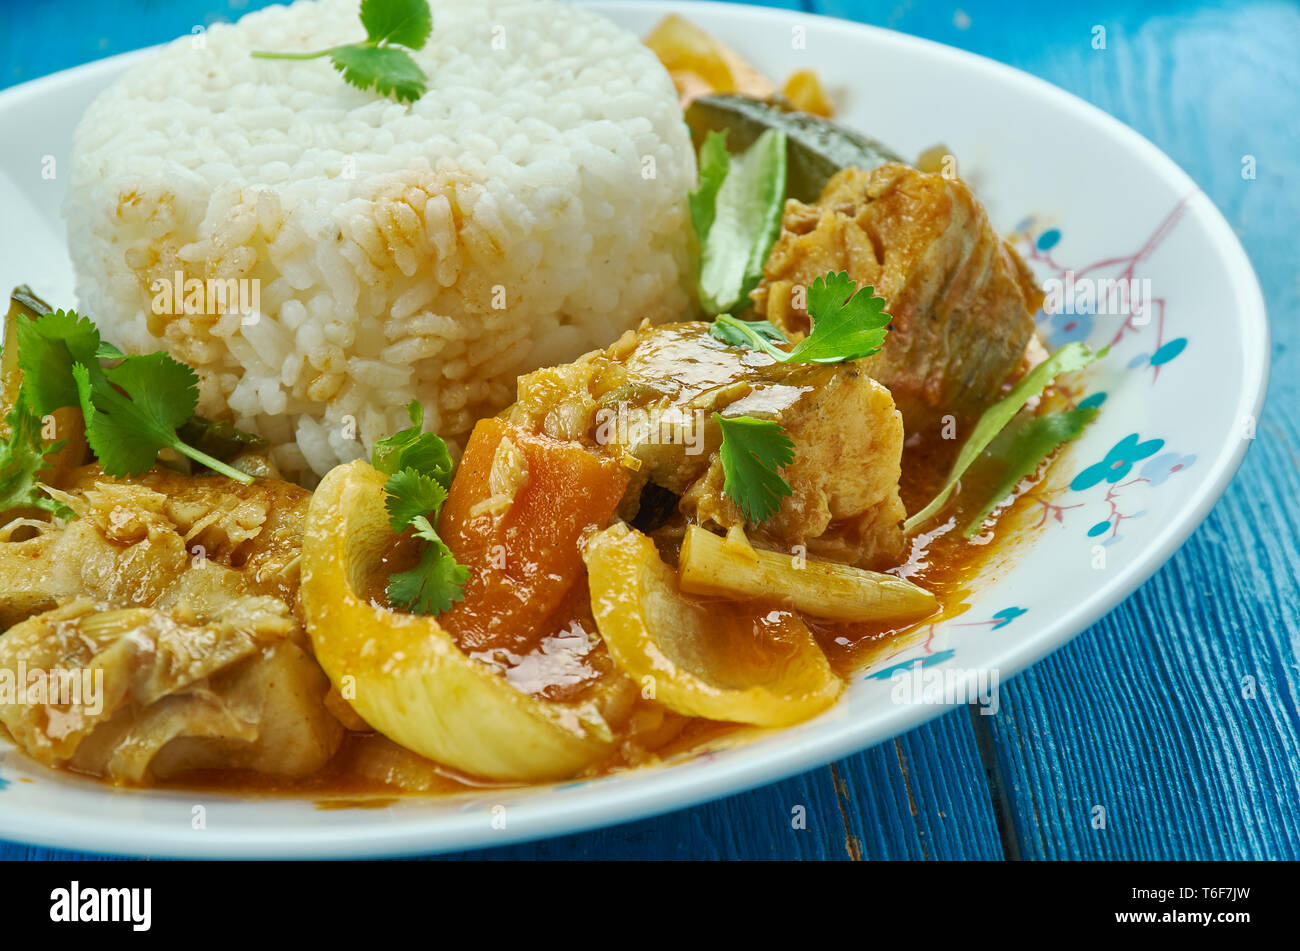 Seychelles fish curry - Stock Image